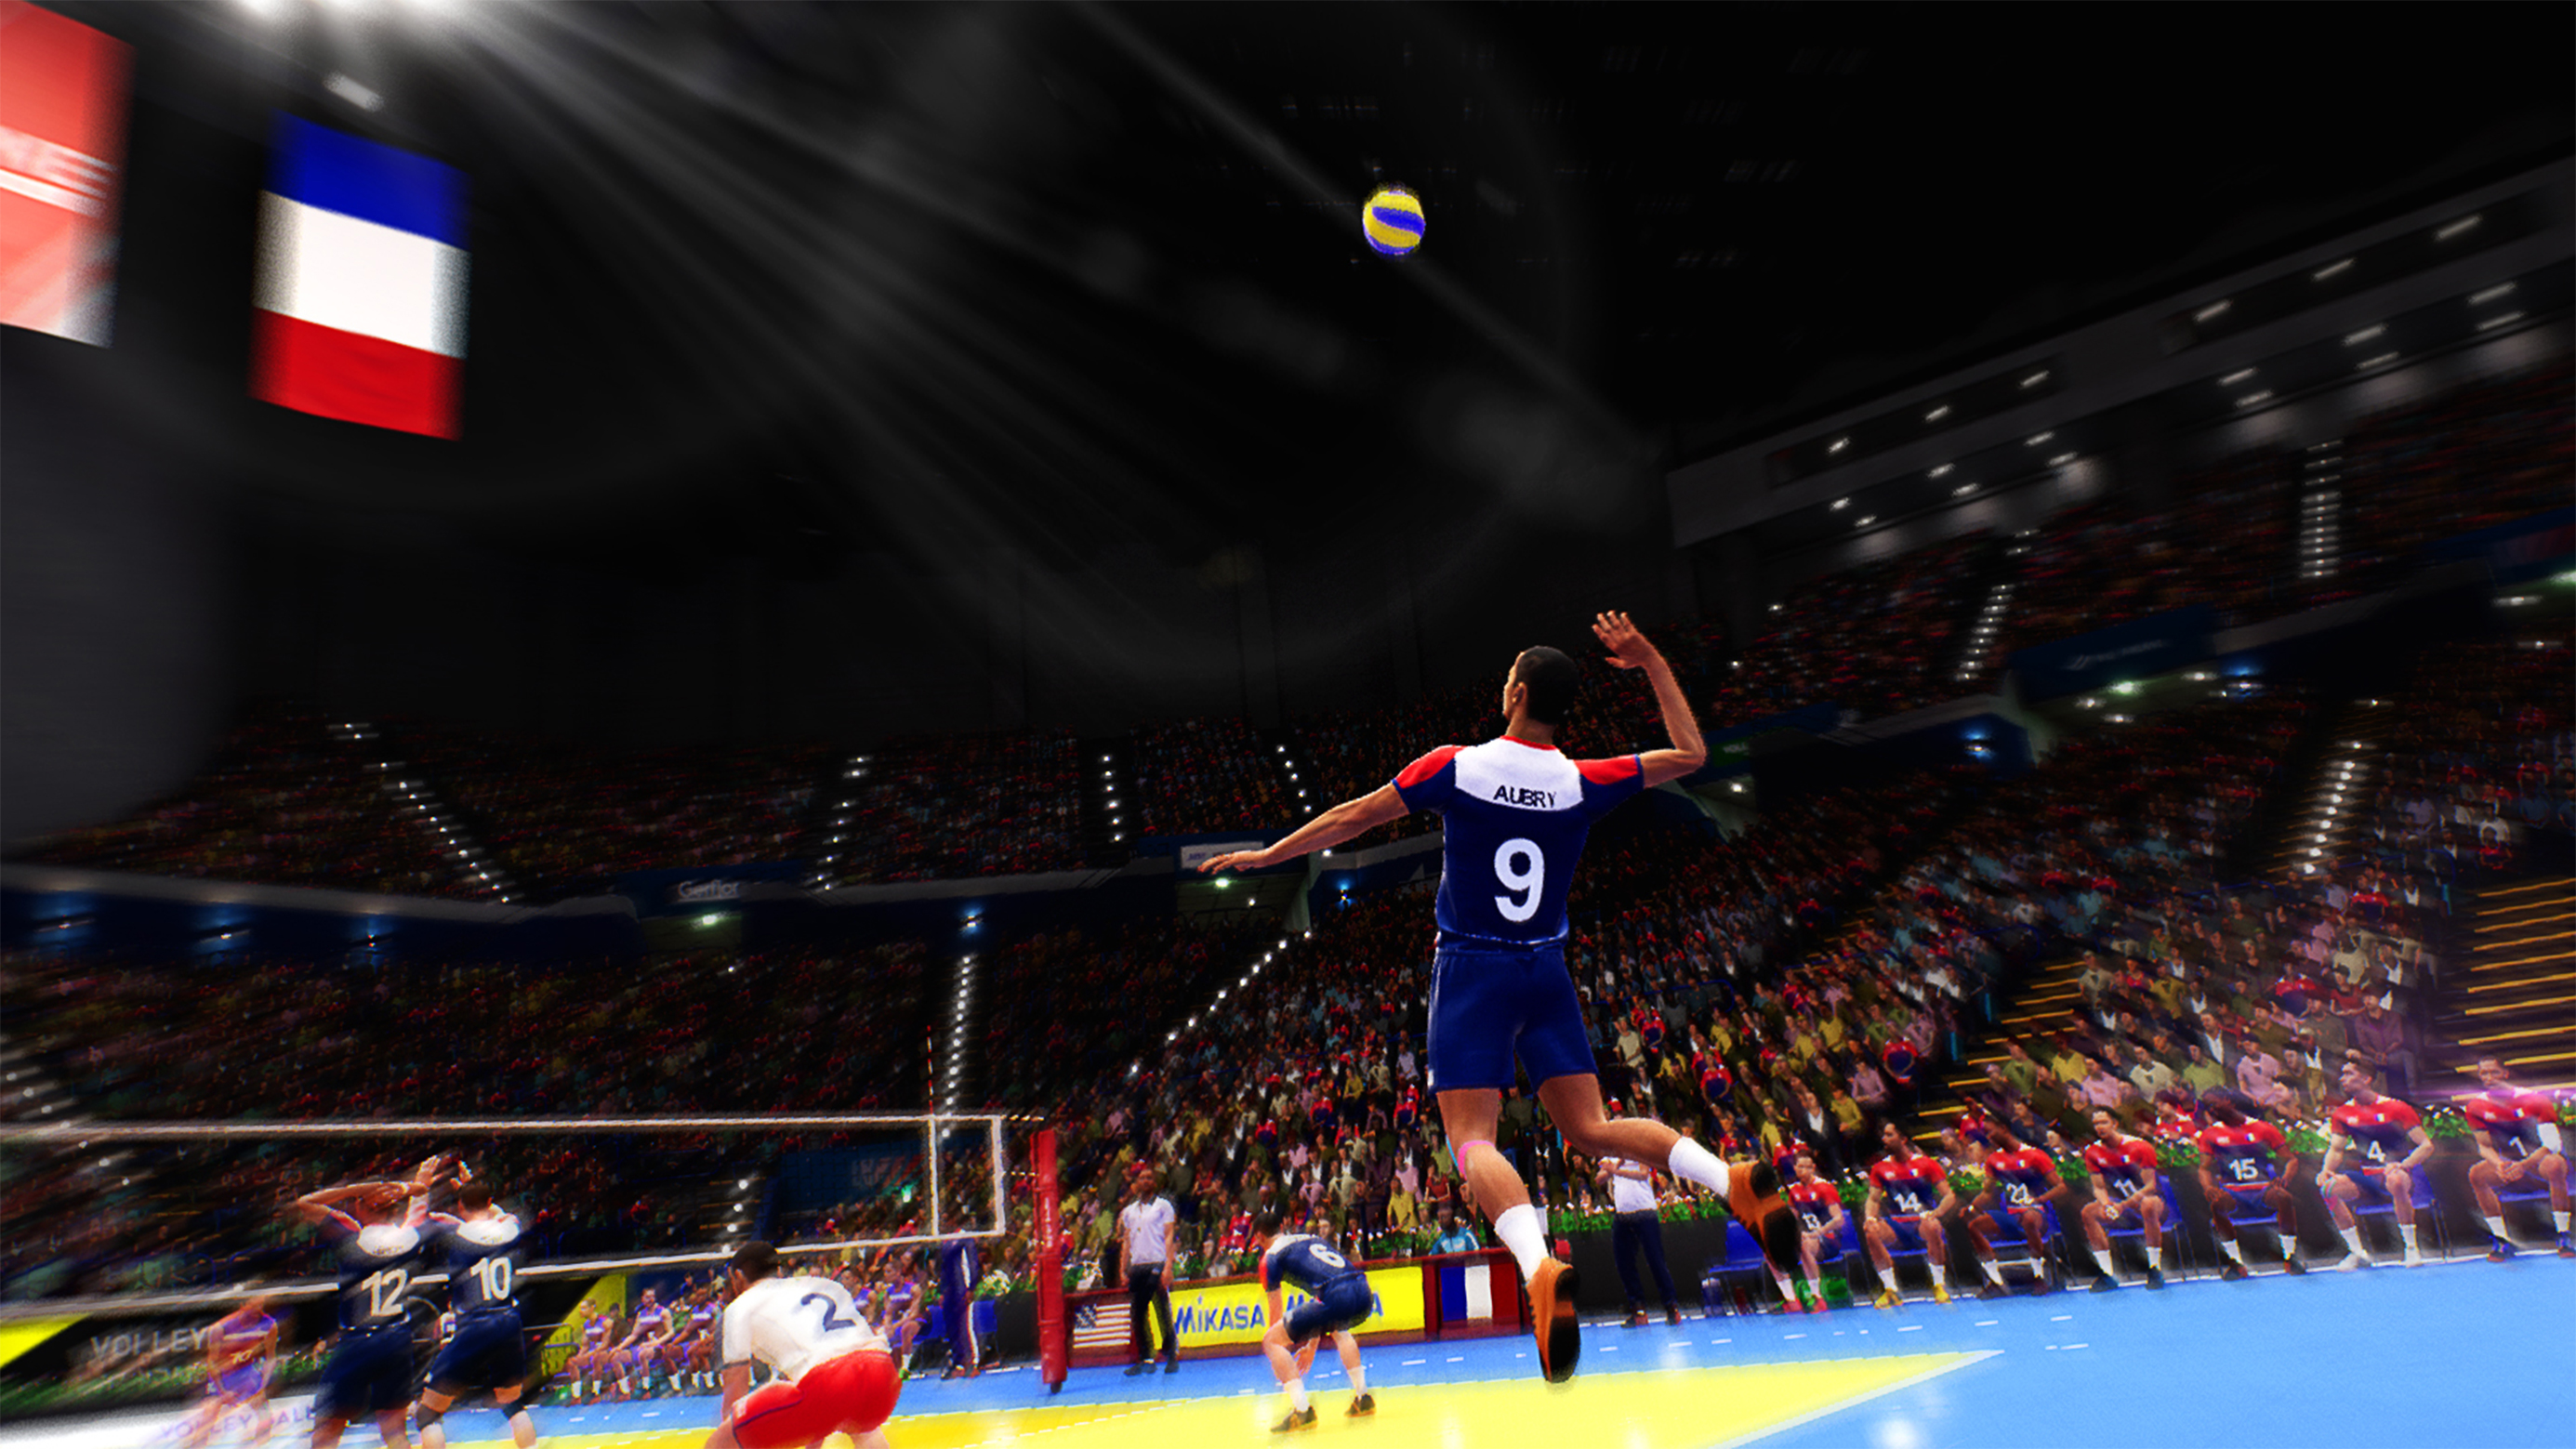 Volleyball player jumping up to spike the volleyball